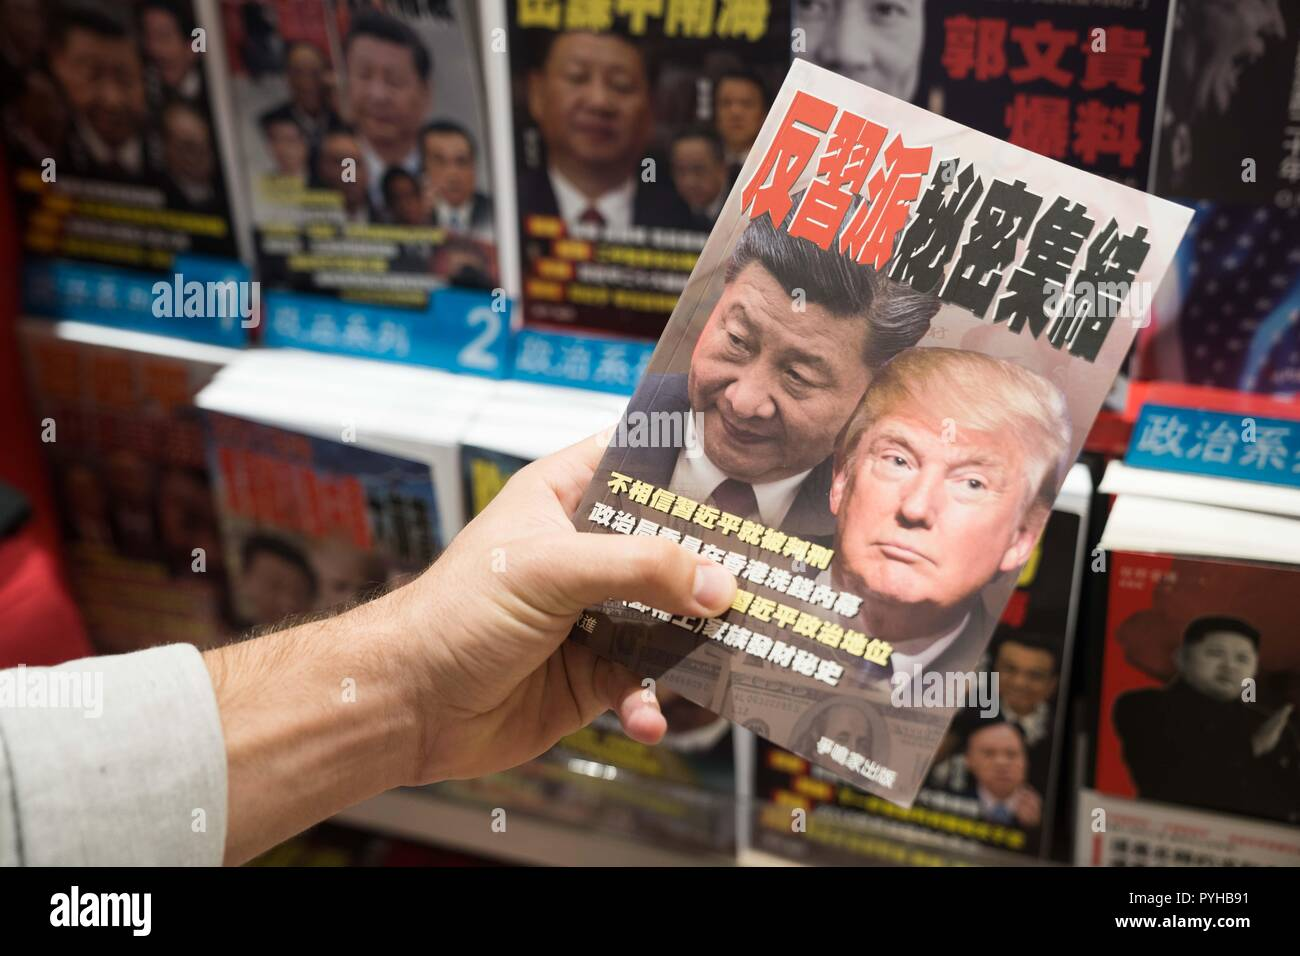 A book about the relationship between US president Donald Trump and the Chinese leader Xi Jinping seen on sale in a book shop in Hong Kong airport. - Stock Image